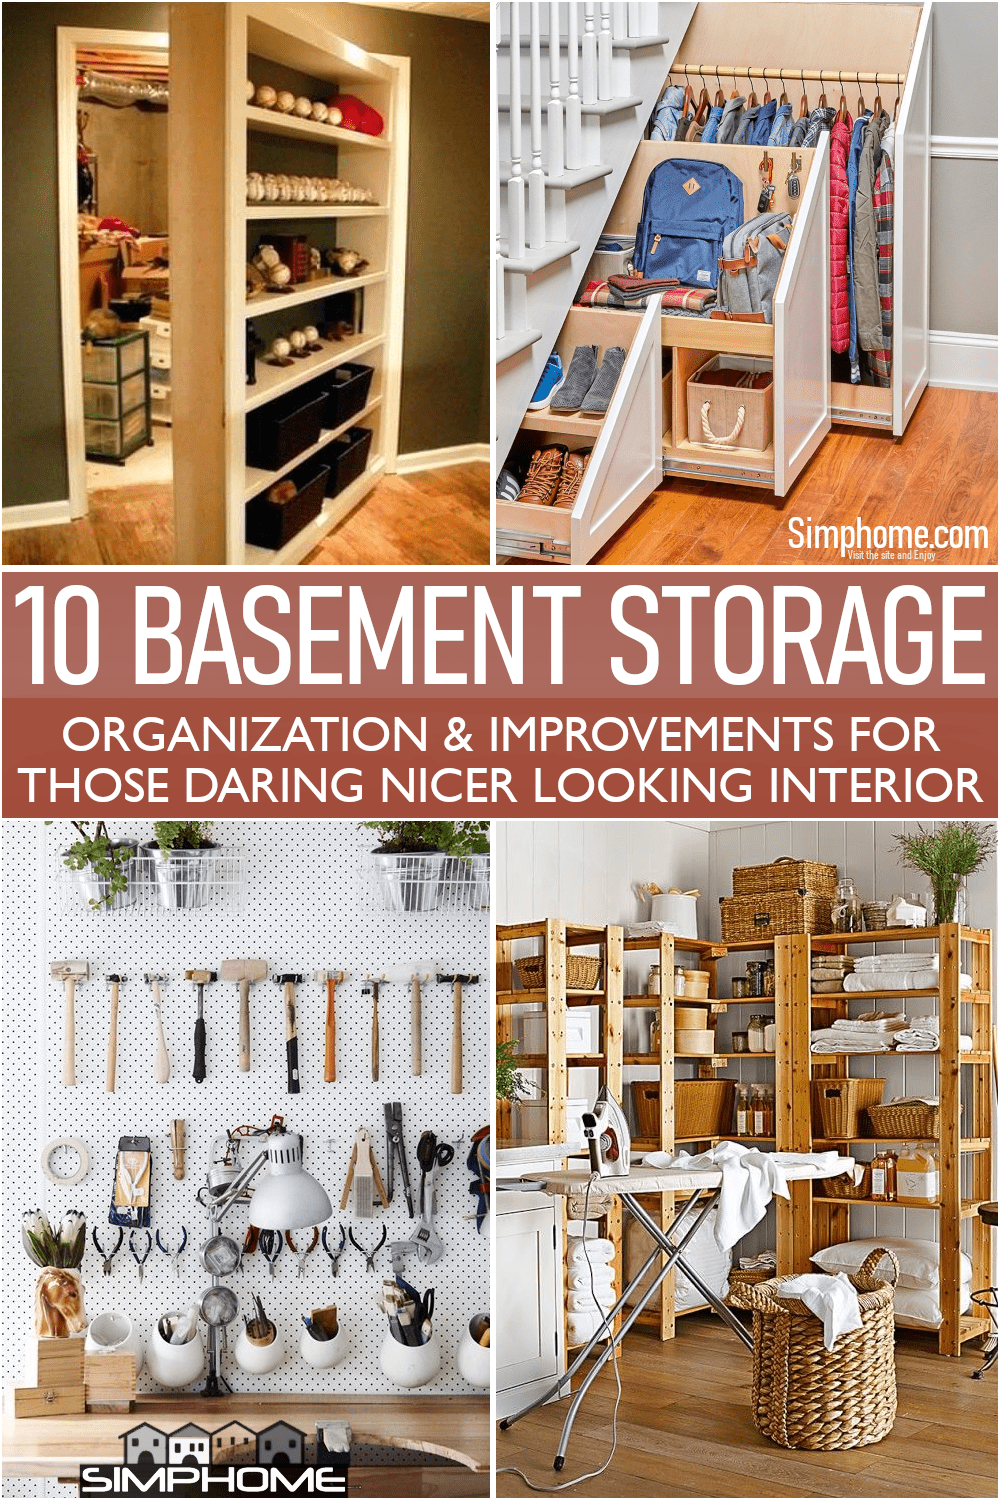 This is the poster for our 10 Basement Storage Room Optimizations